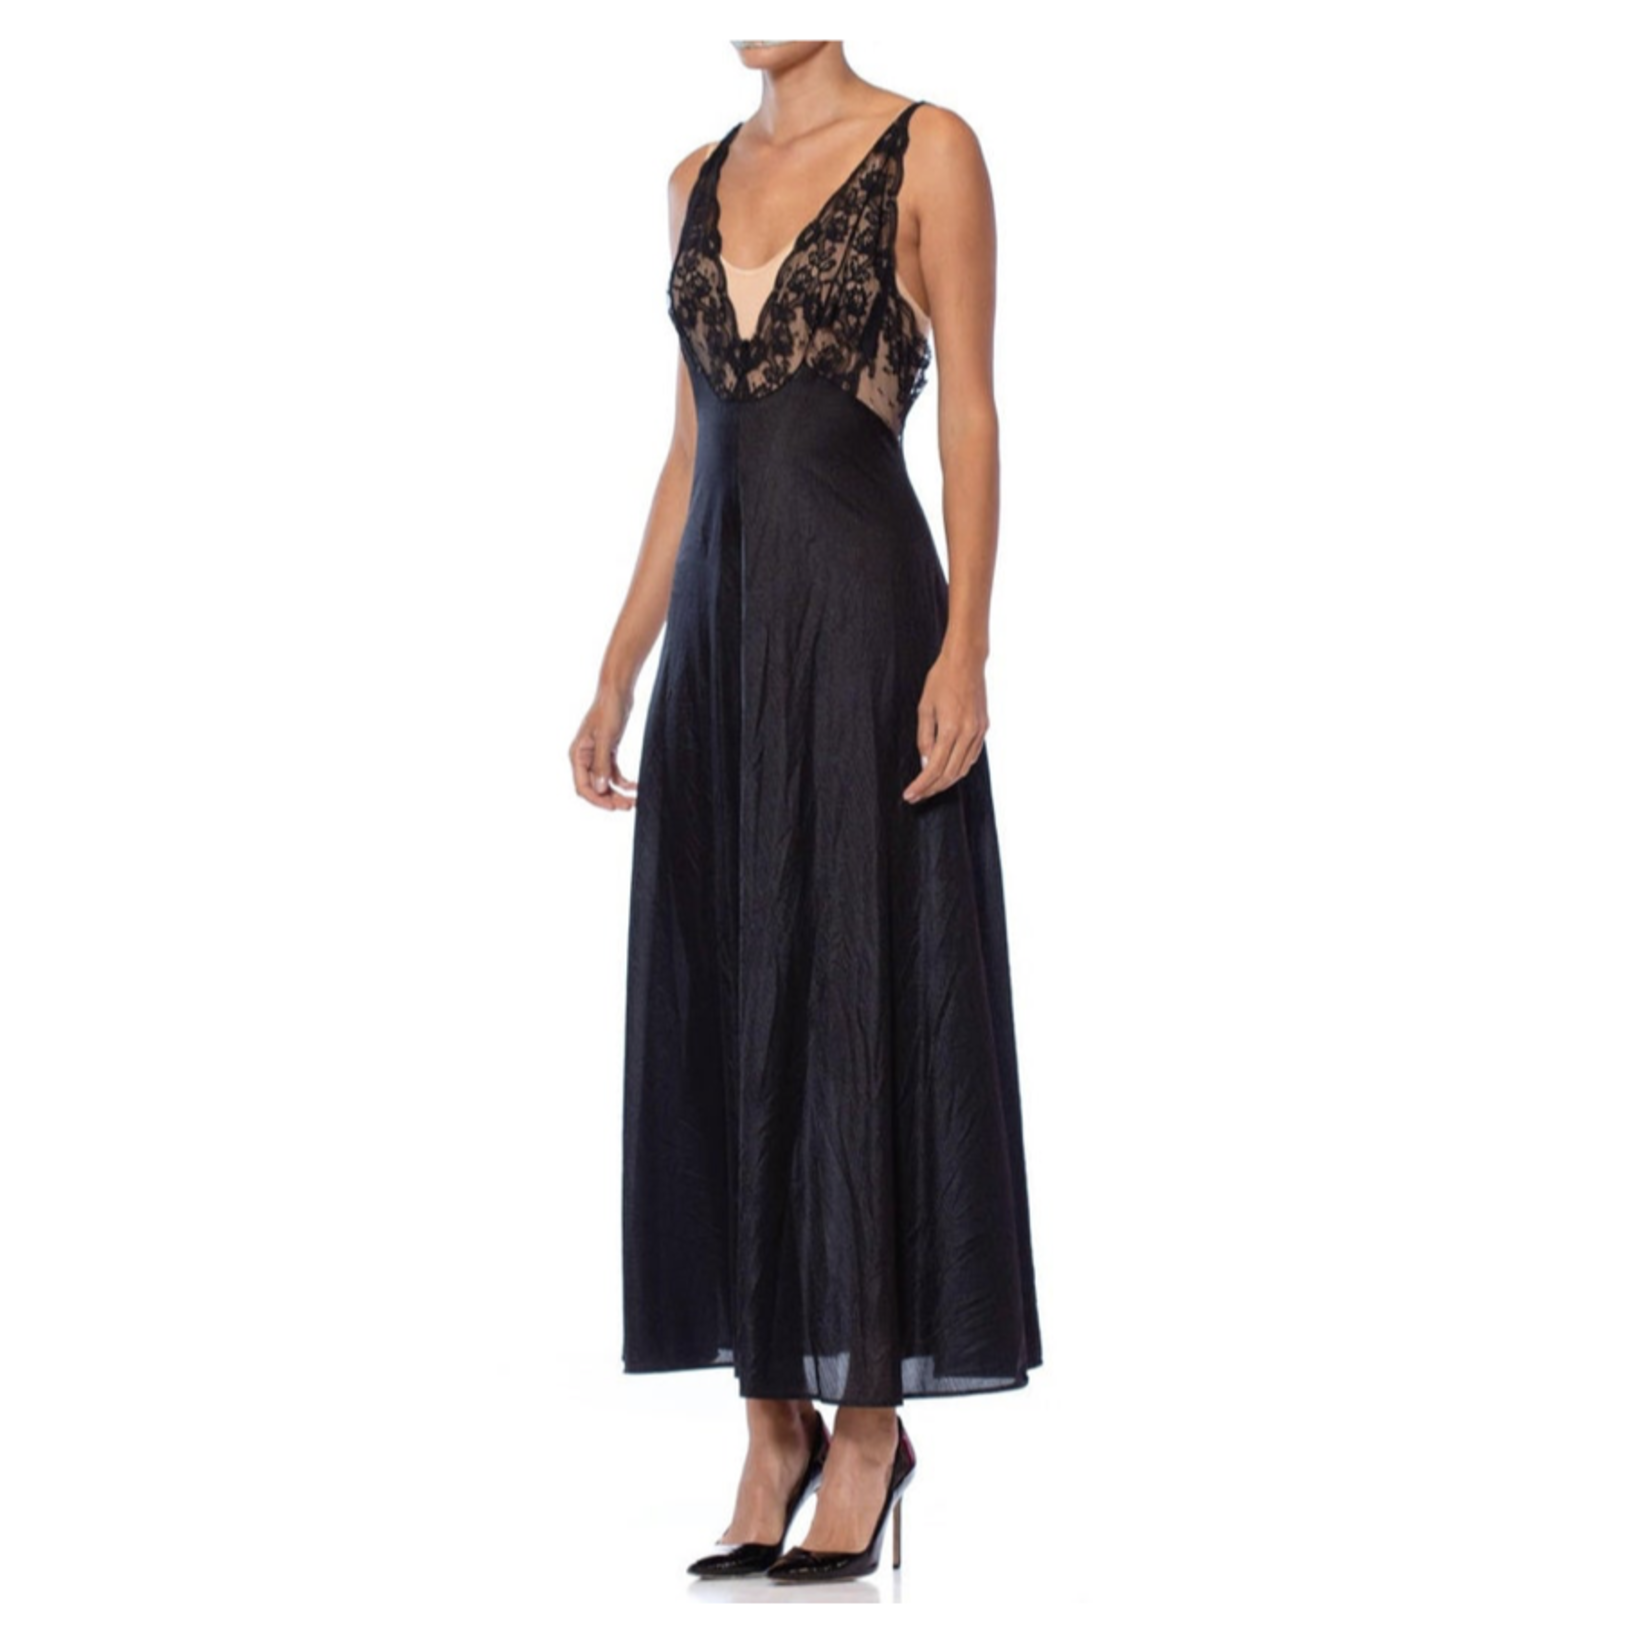 1970s Black Nylon Tricot Jersey Lace Trimmed Negligee SL9ON41946